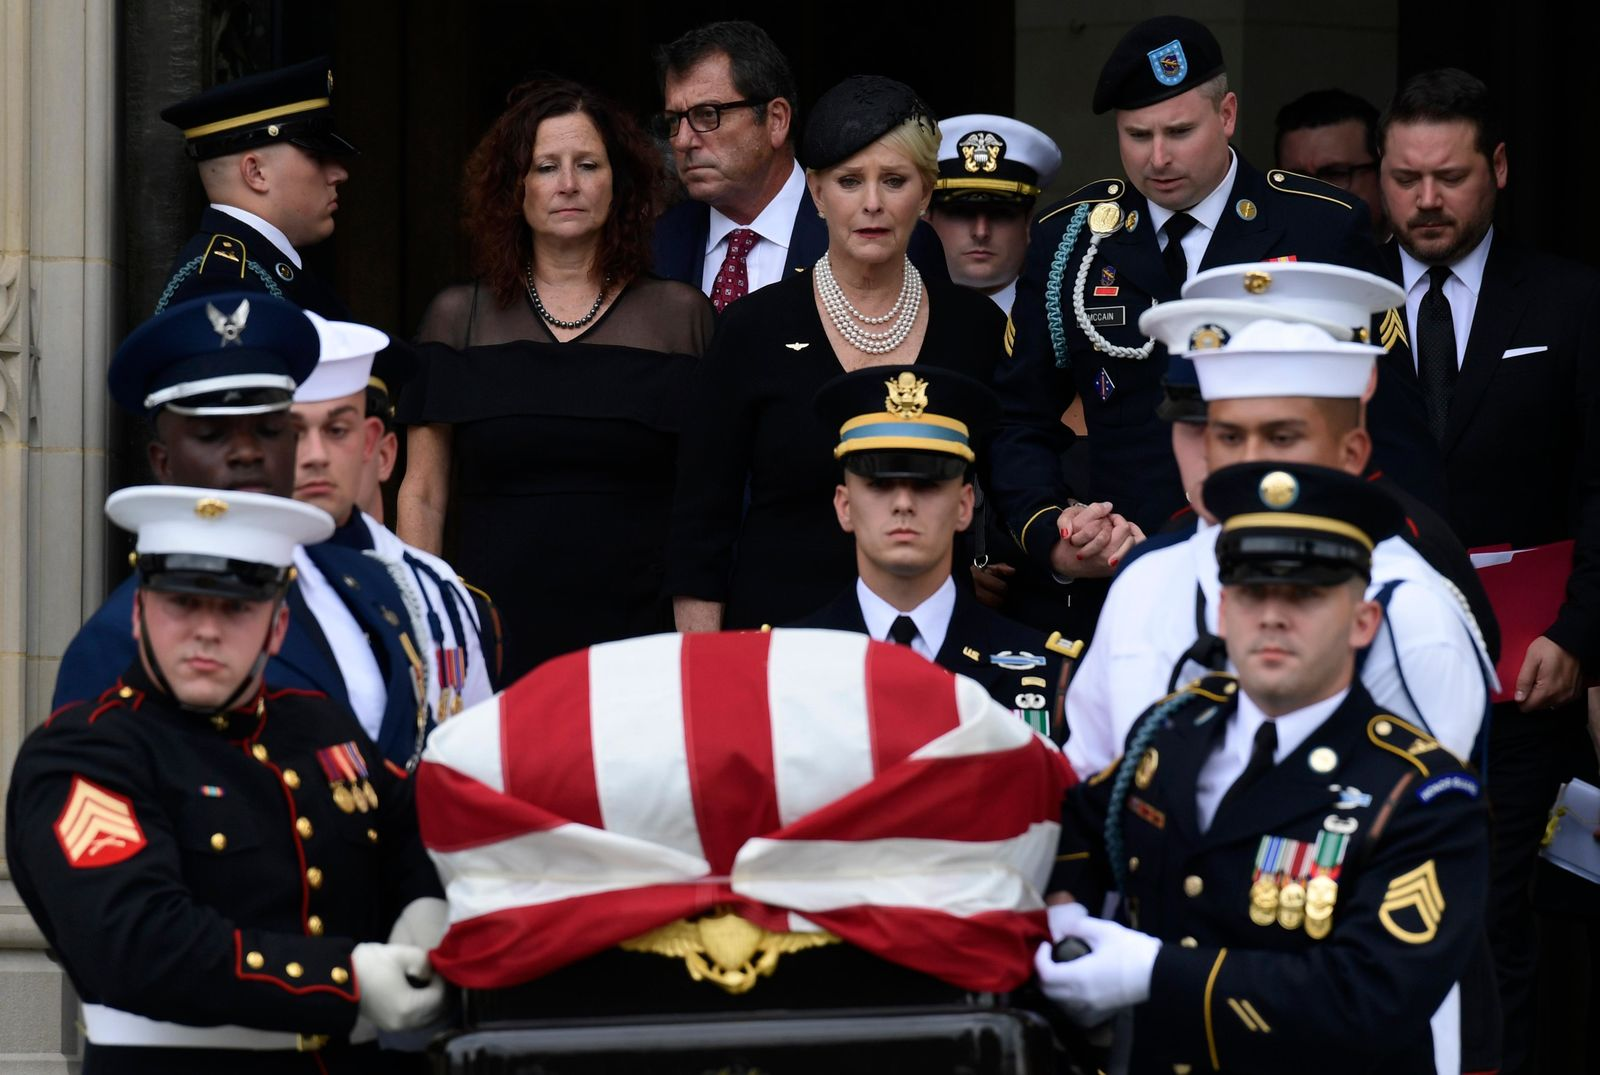 Cindy McCain, center, widow of Sen. John McCain, R-Ariz., escorted by her son Jimmy McCain and other family members, follows his casket as it is carried out of Washington National Cathedral in Washington, Saturday, Sept. 1, 2018, following a memorial service. (AP Photo/Susan Walsh)